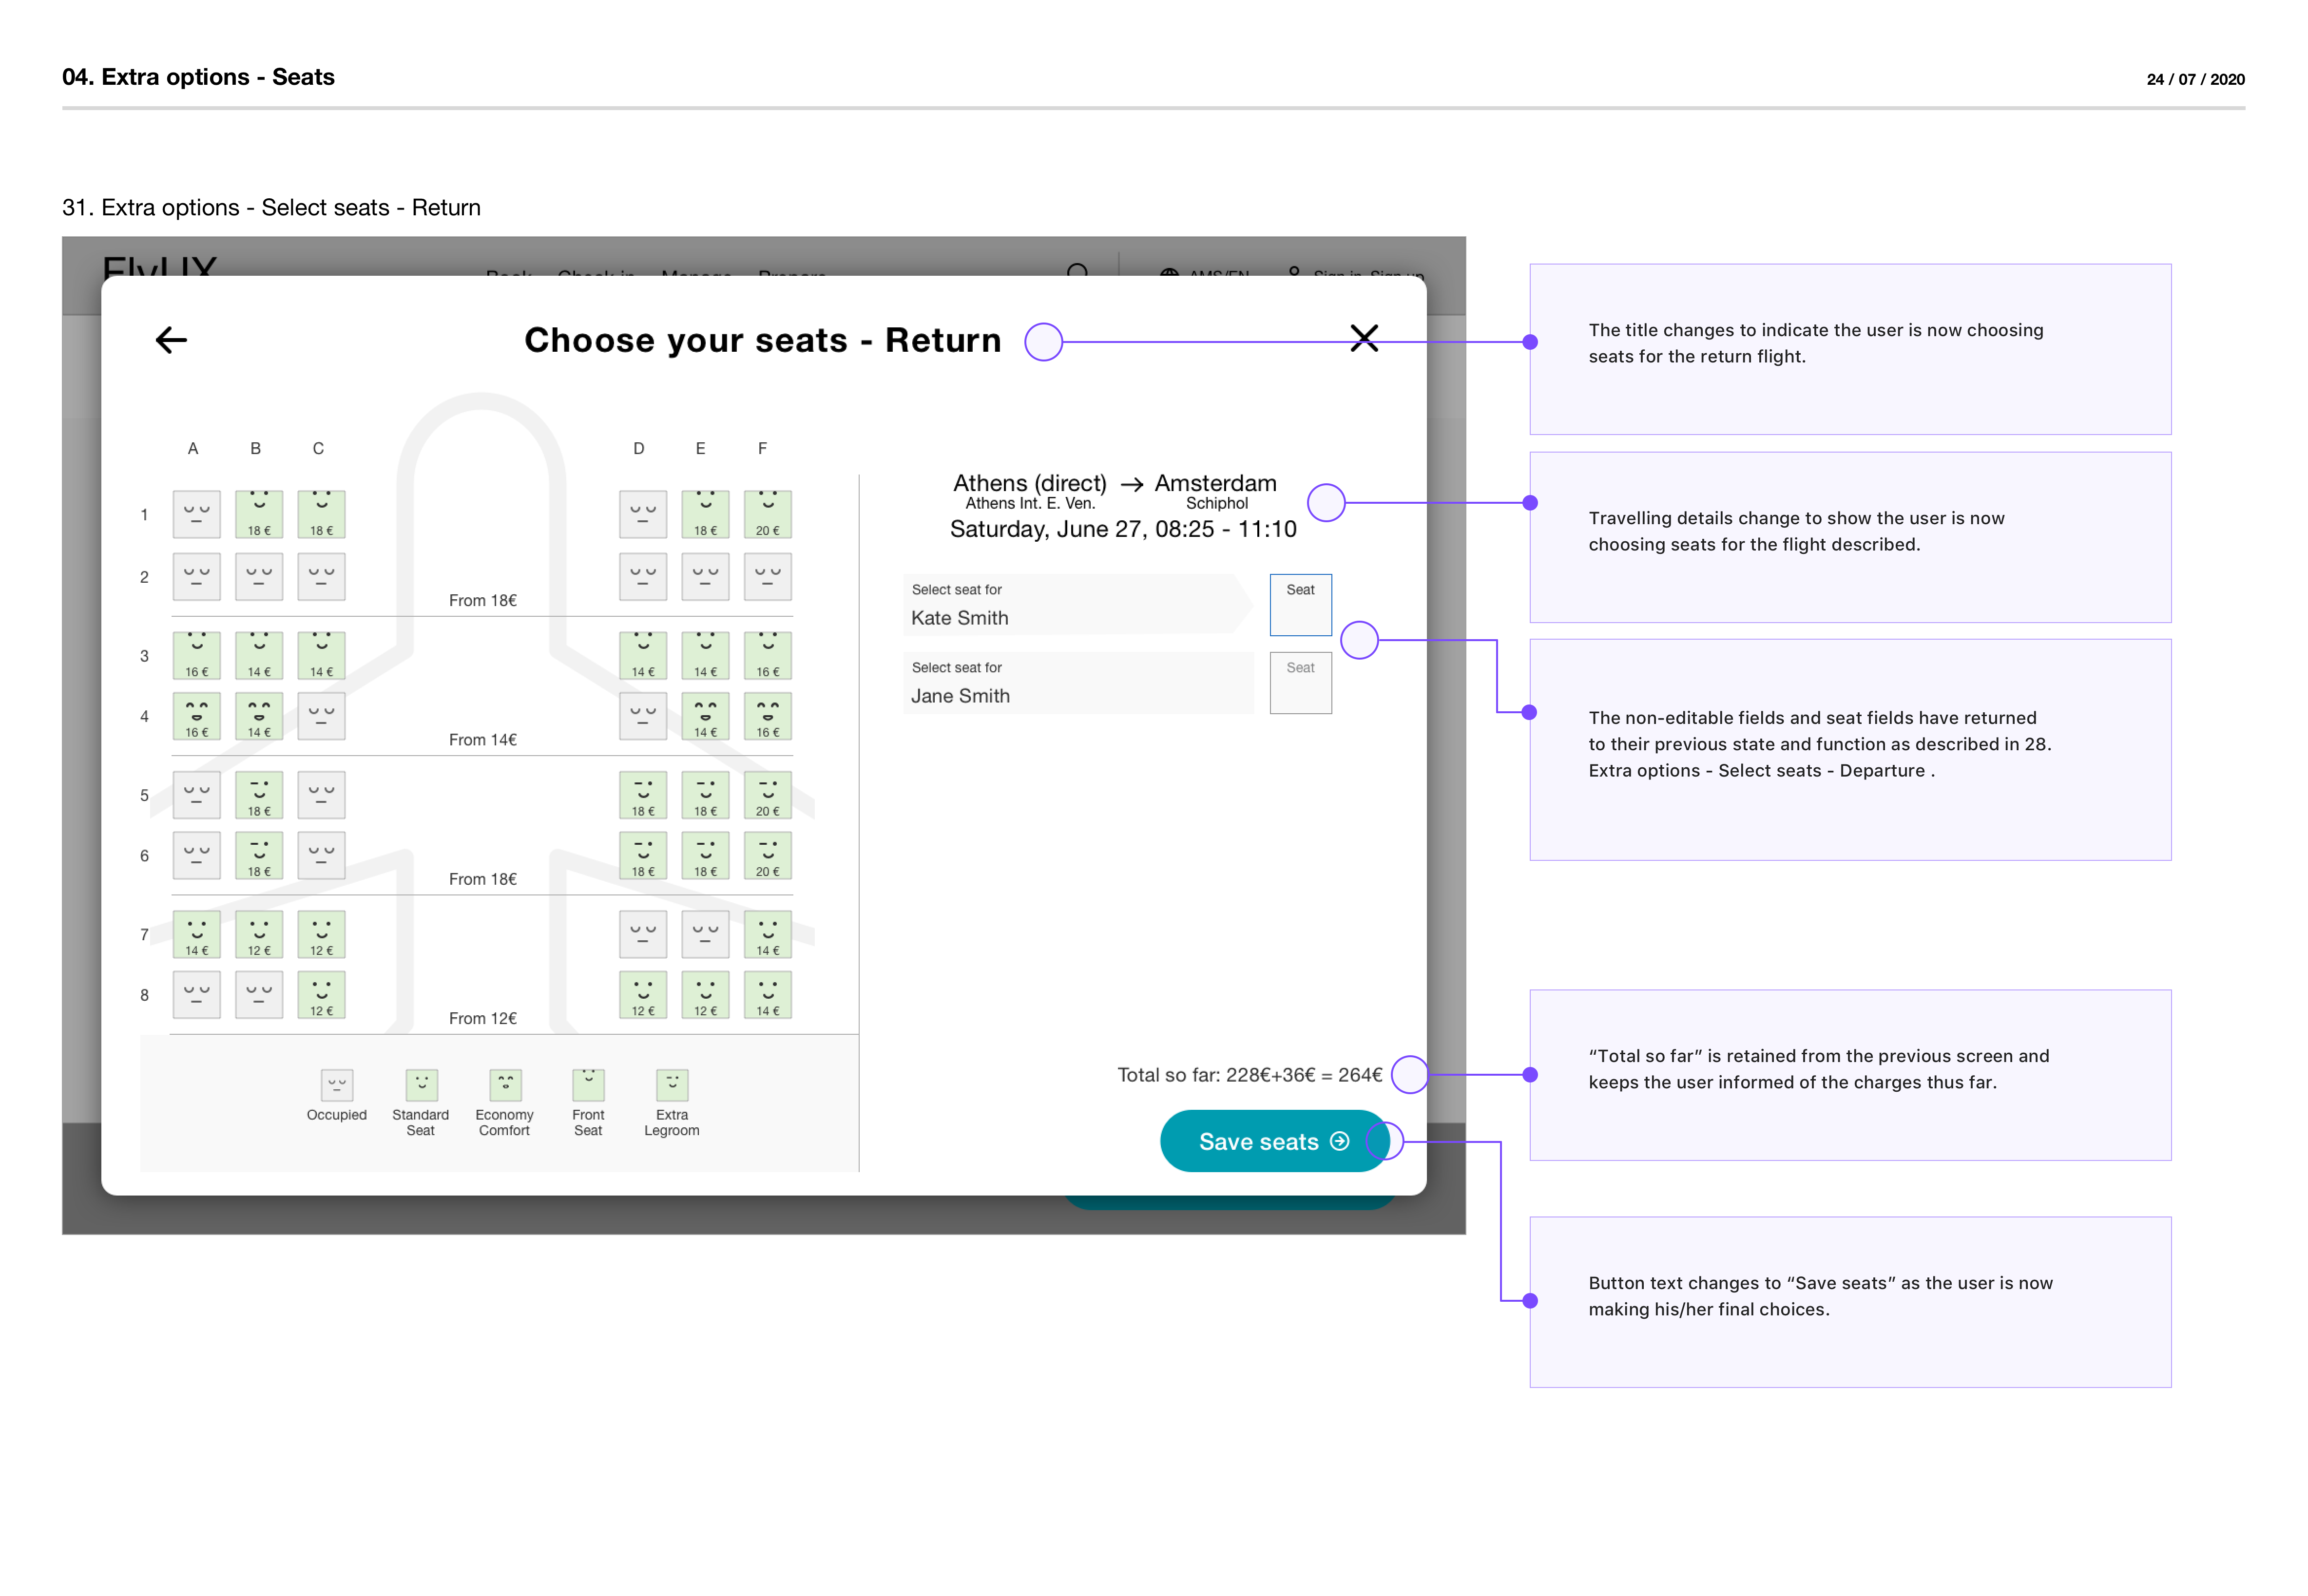 Wireframe about the extra options and select seats